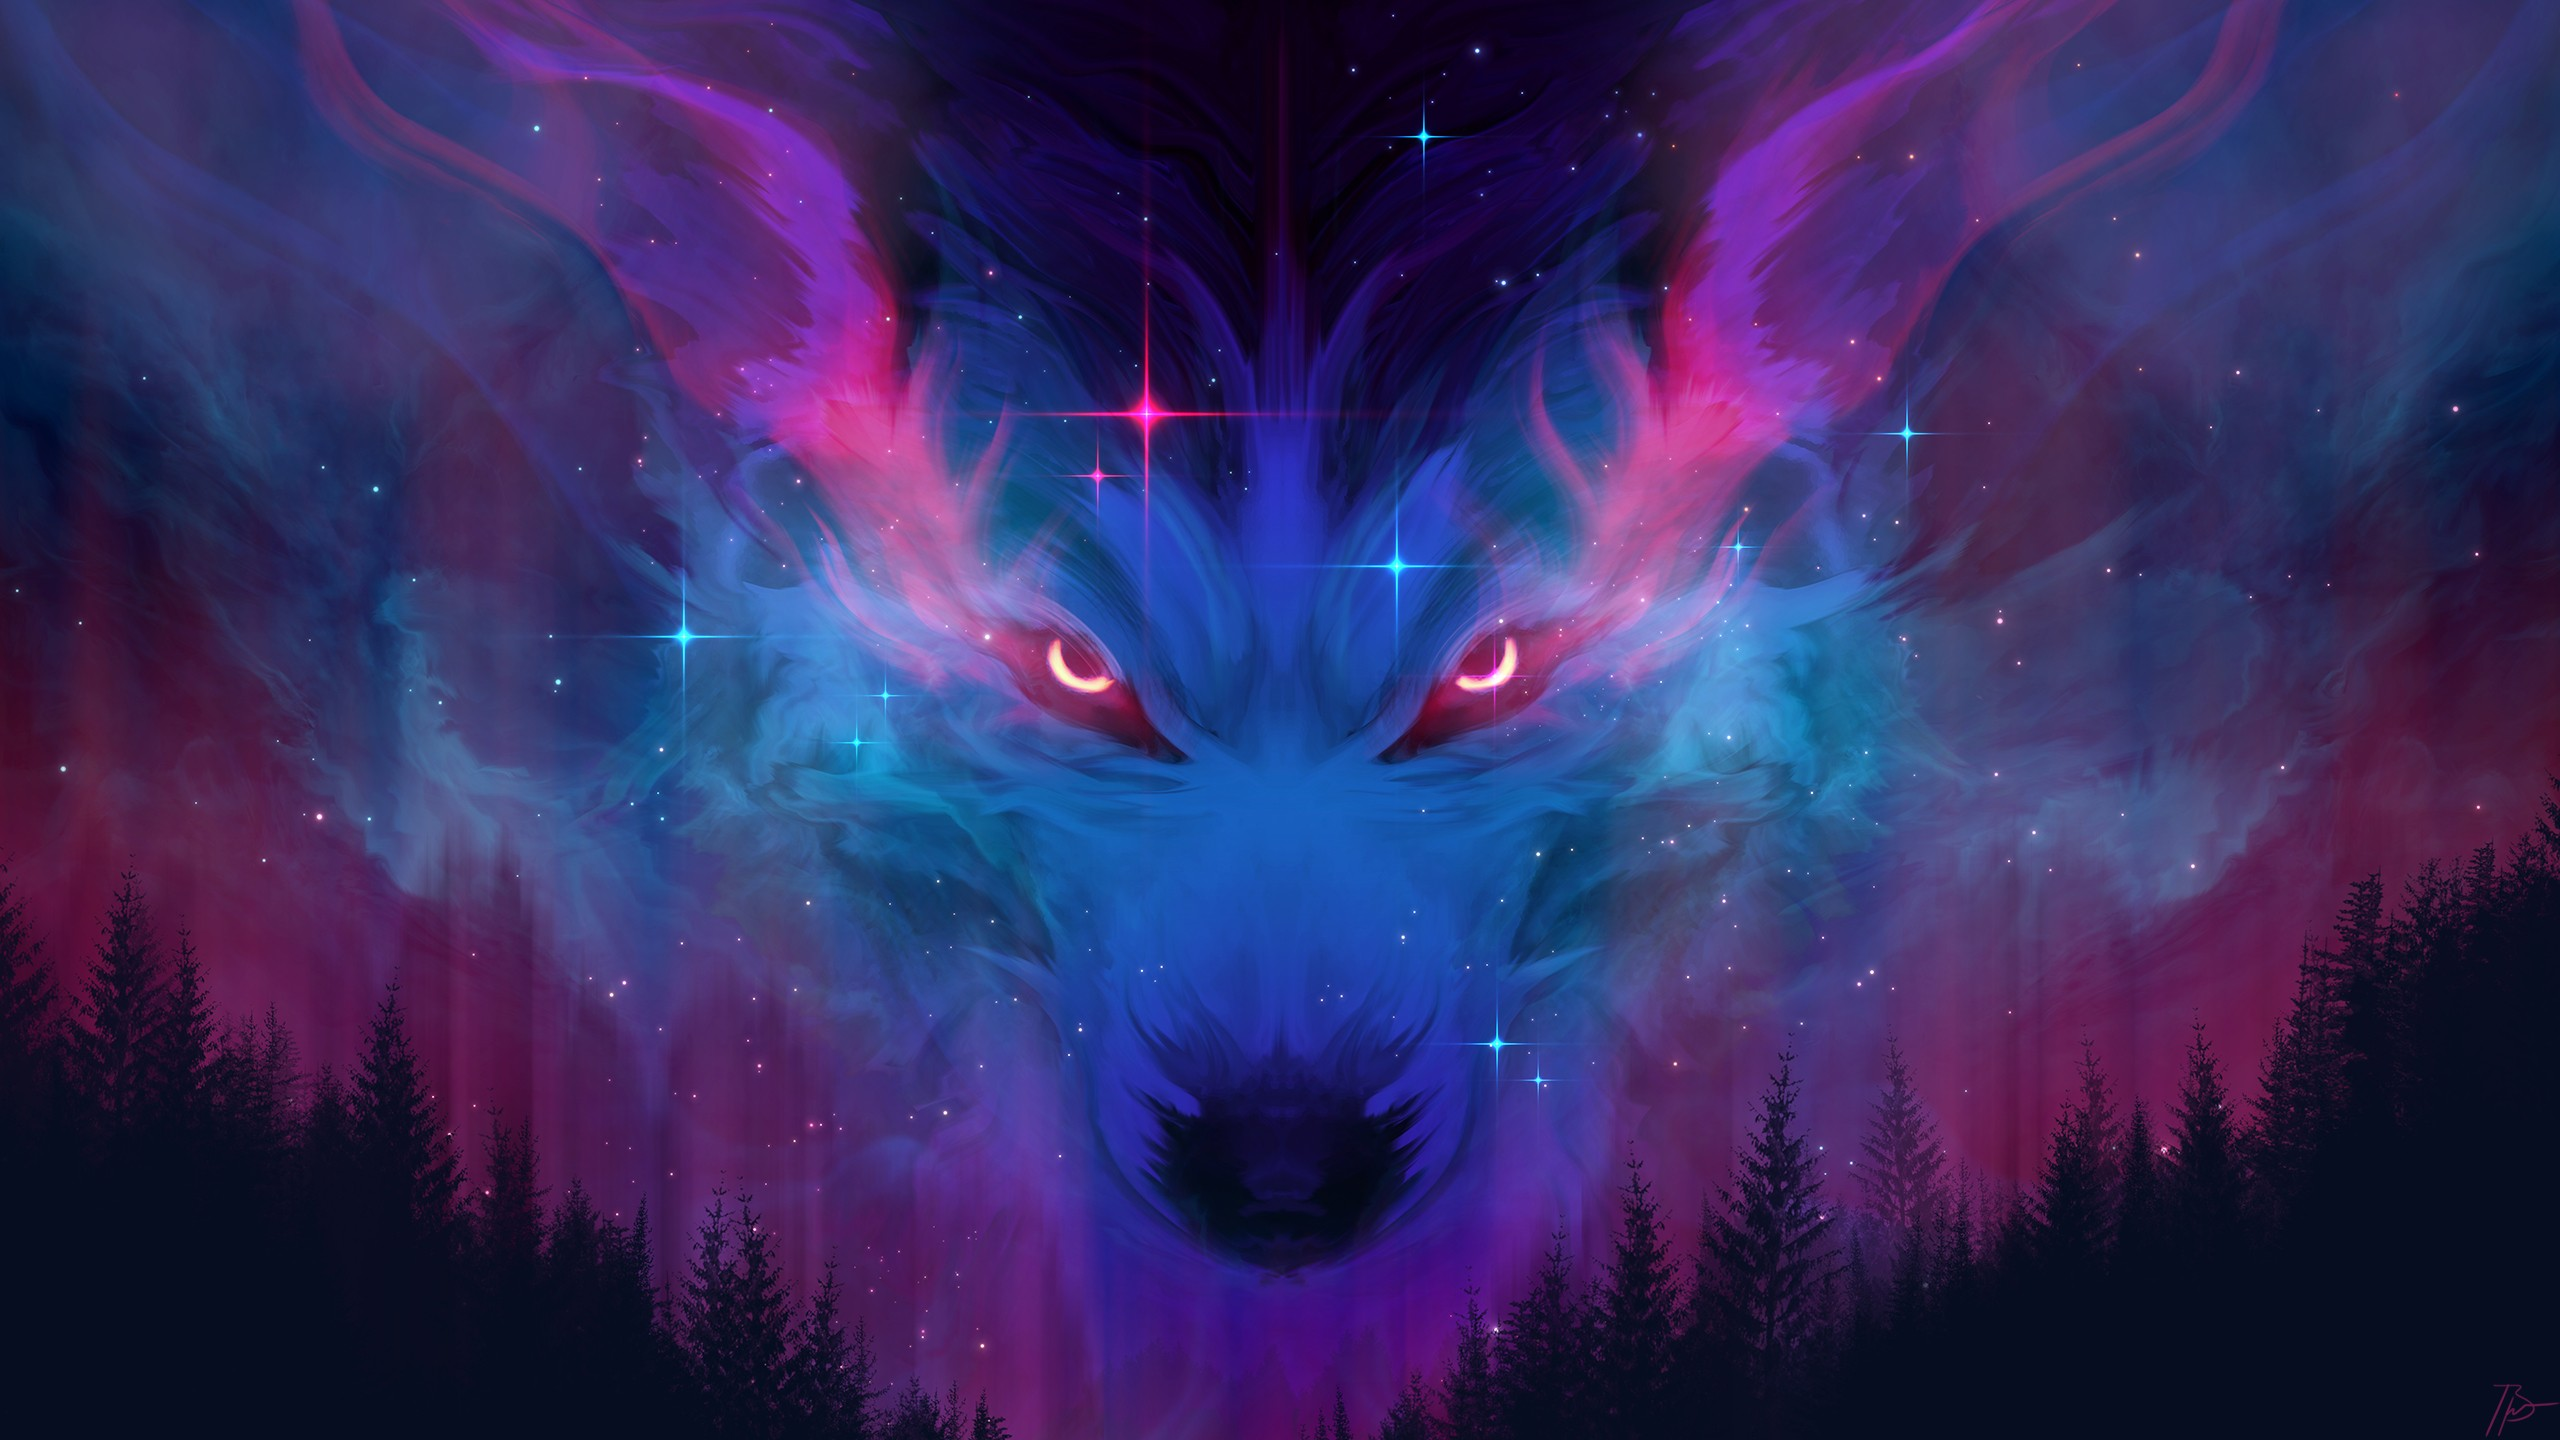 Wallpaper Wolf in the sky of forest